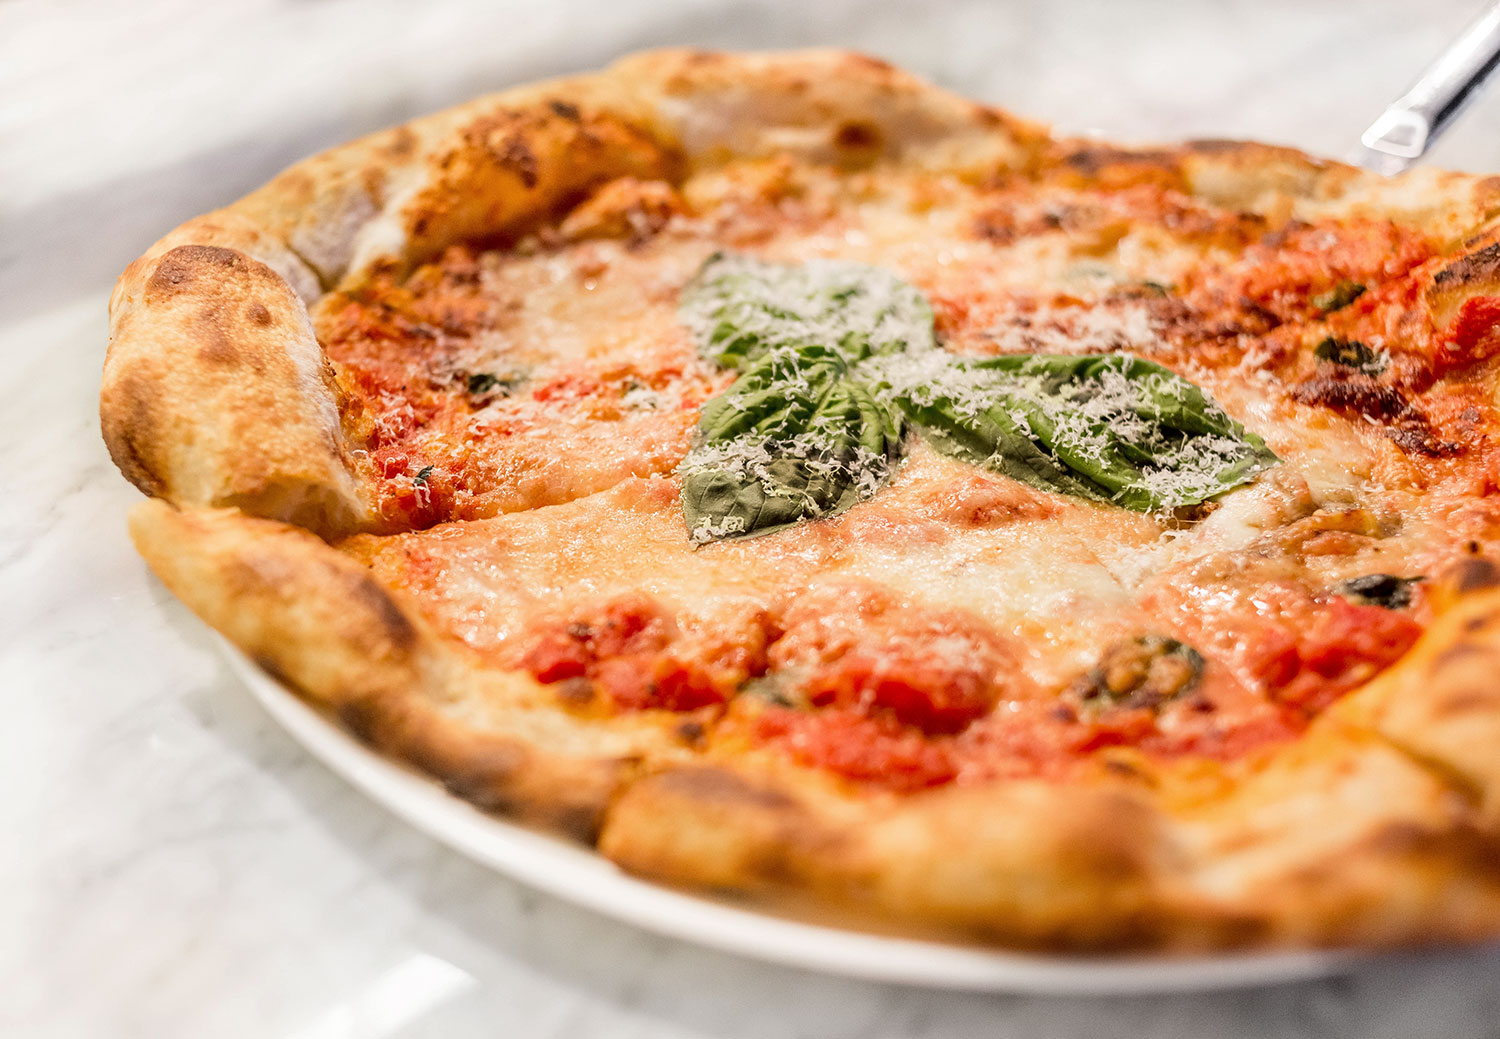 Pizza Restaurant Pie Tap Plano Restaurant Now Serving Pizzas And Wine Beer On Tap